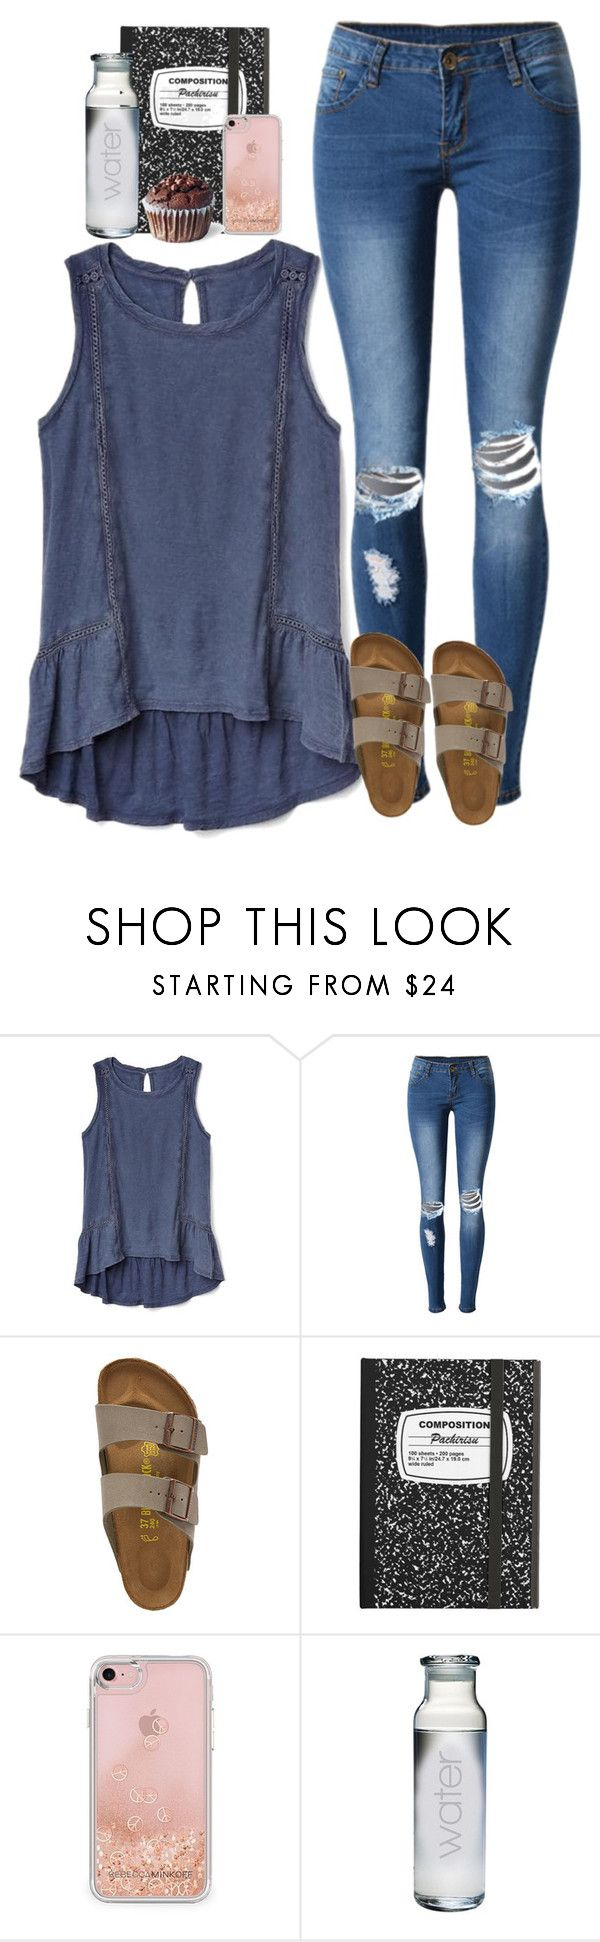 """You're my Kryptonite"" by labures ❤ liked on Polyvore featuring Gap, WithChic, Birkenstock and Rebecca Minkoff"